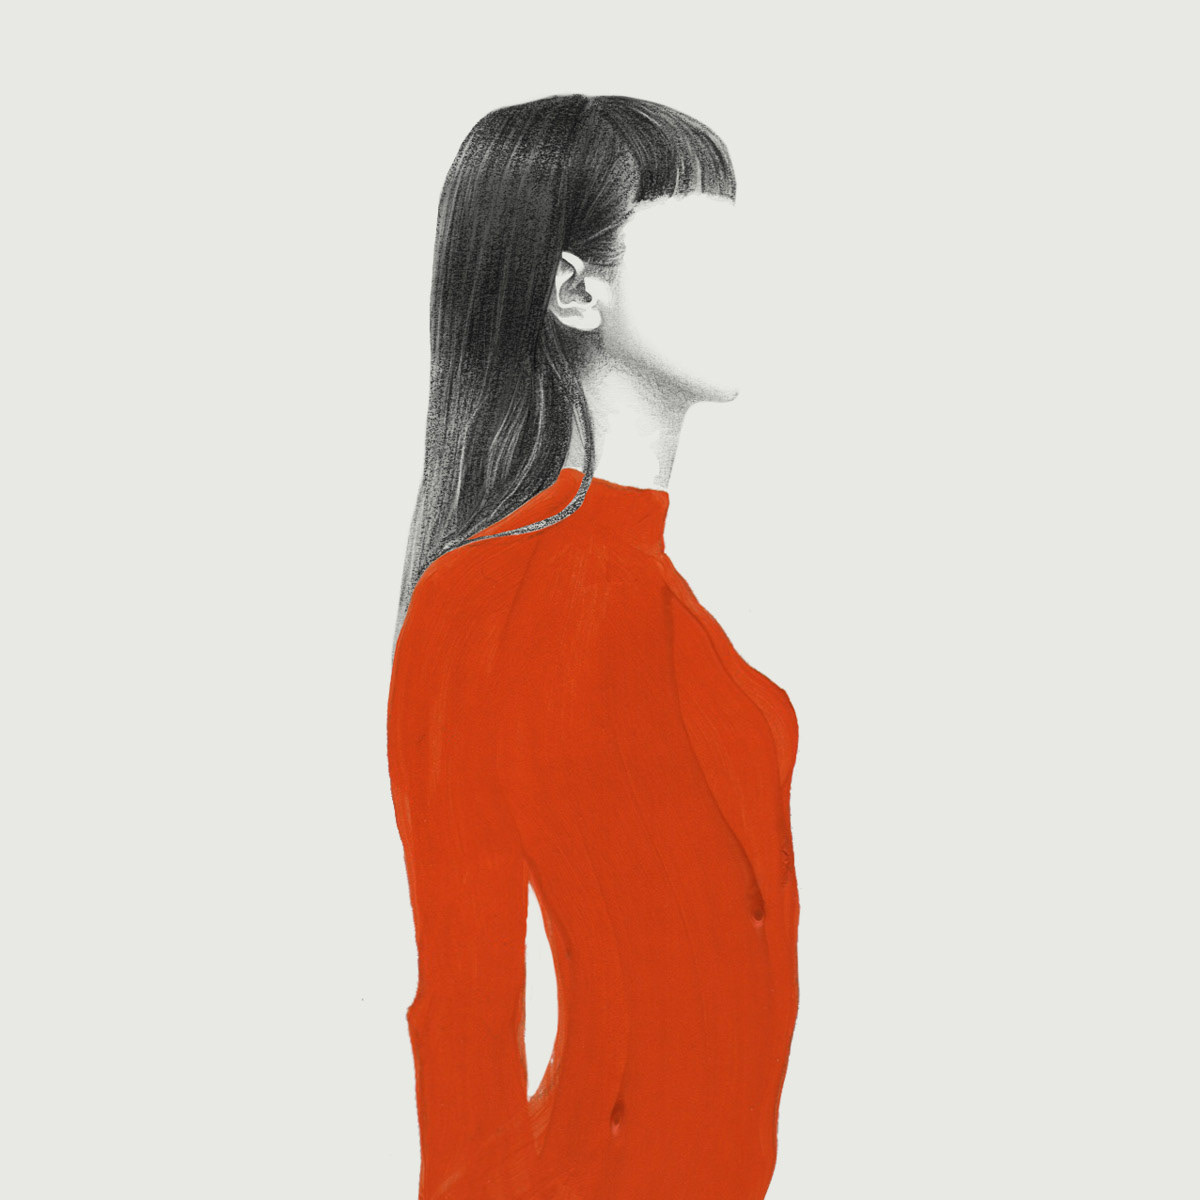 A watercolour painting of a woman, standing sideways in a red shirt, but she has no face.